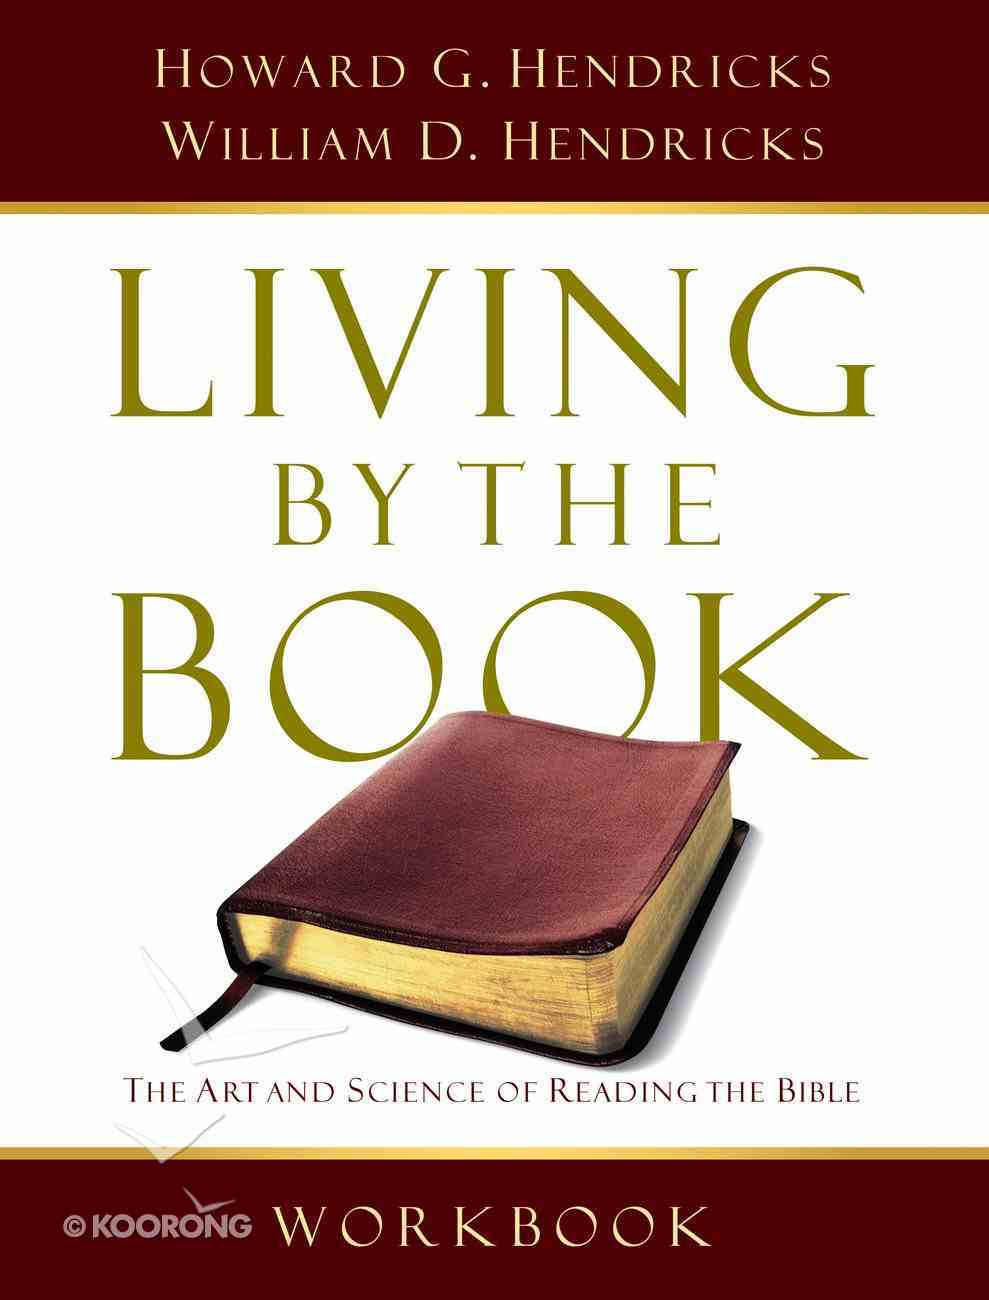 Living By the Book (Revised 2007) (Workbook) eBook